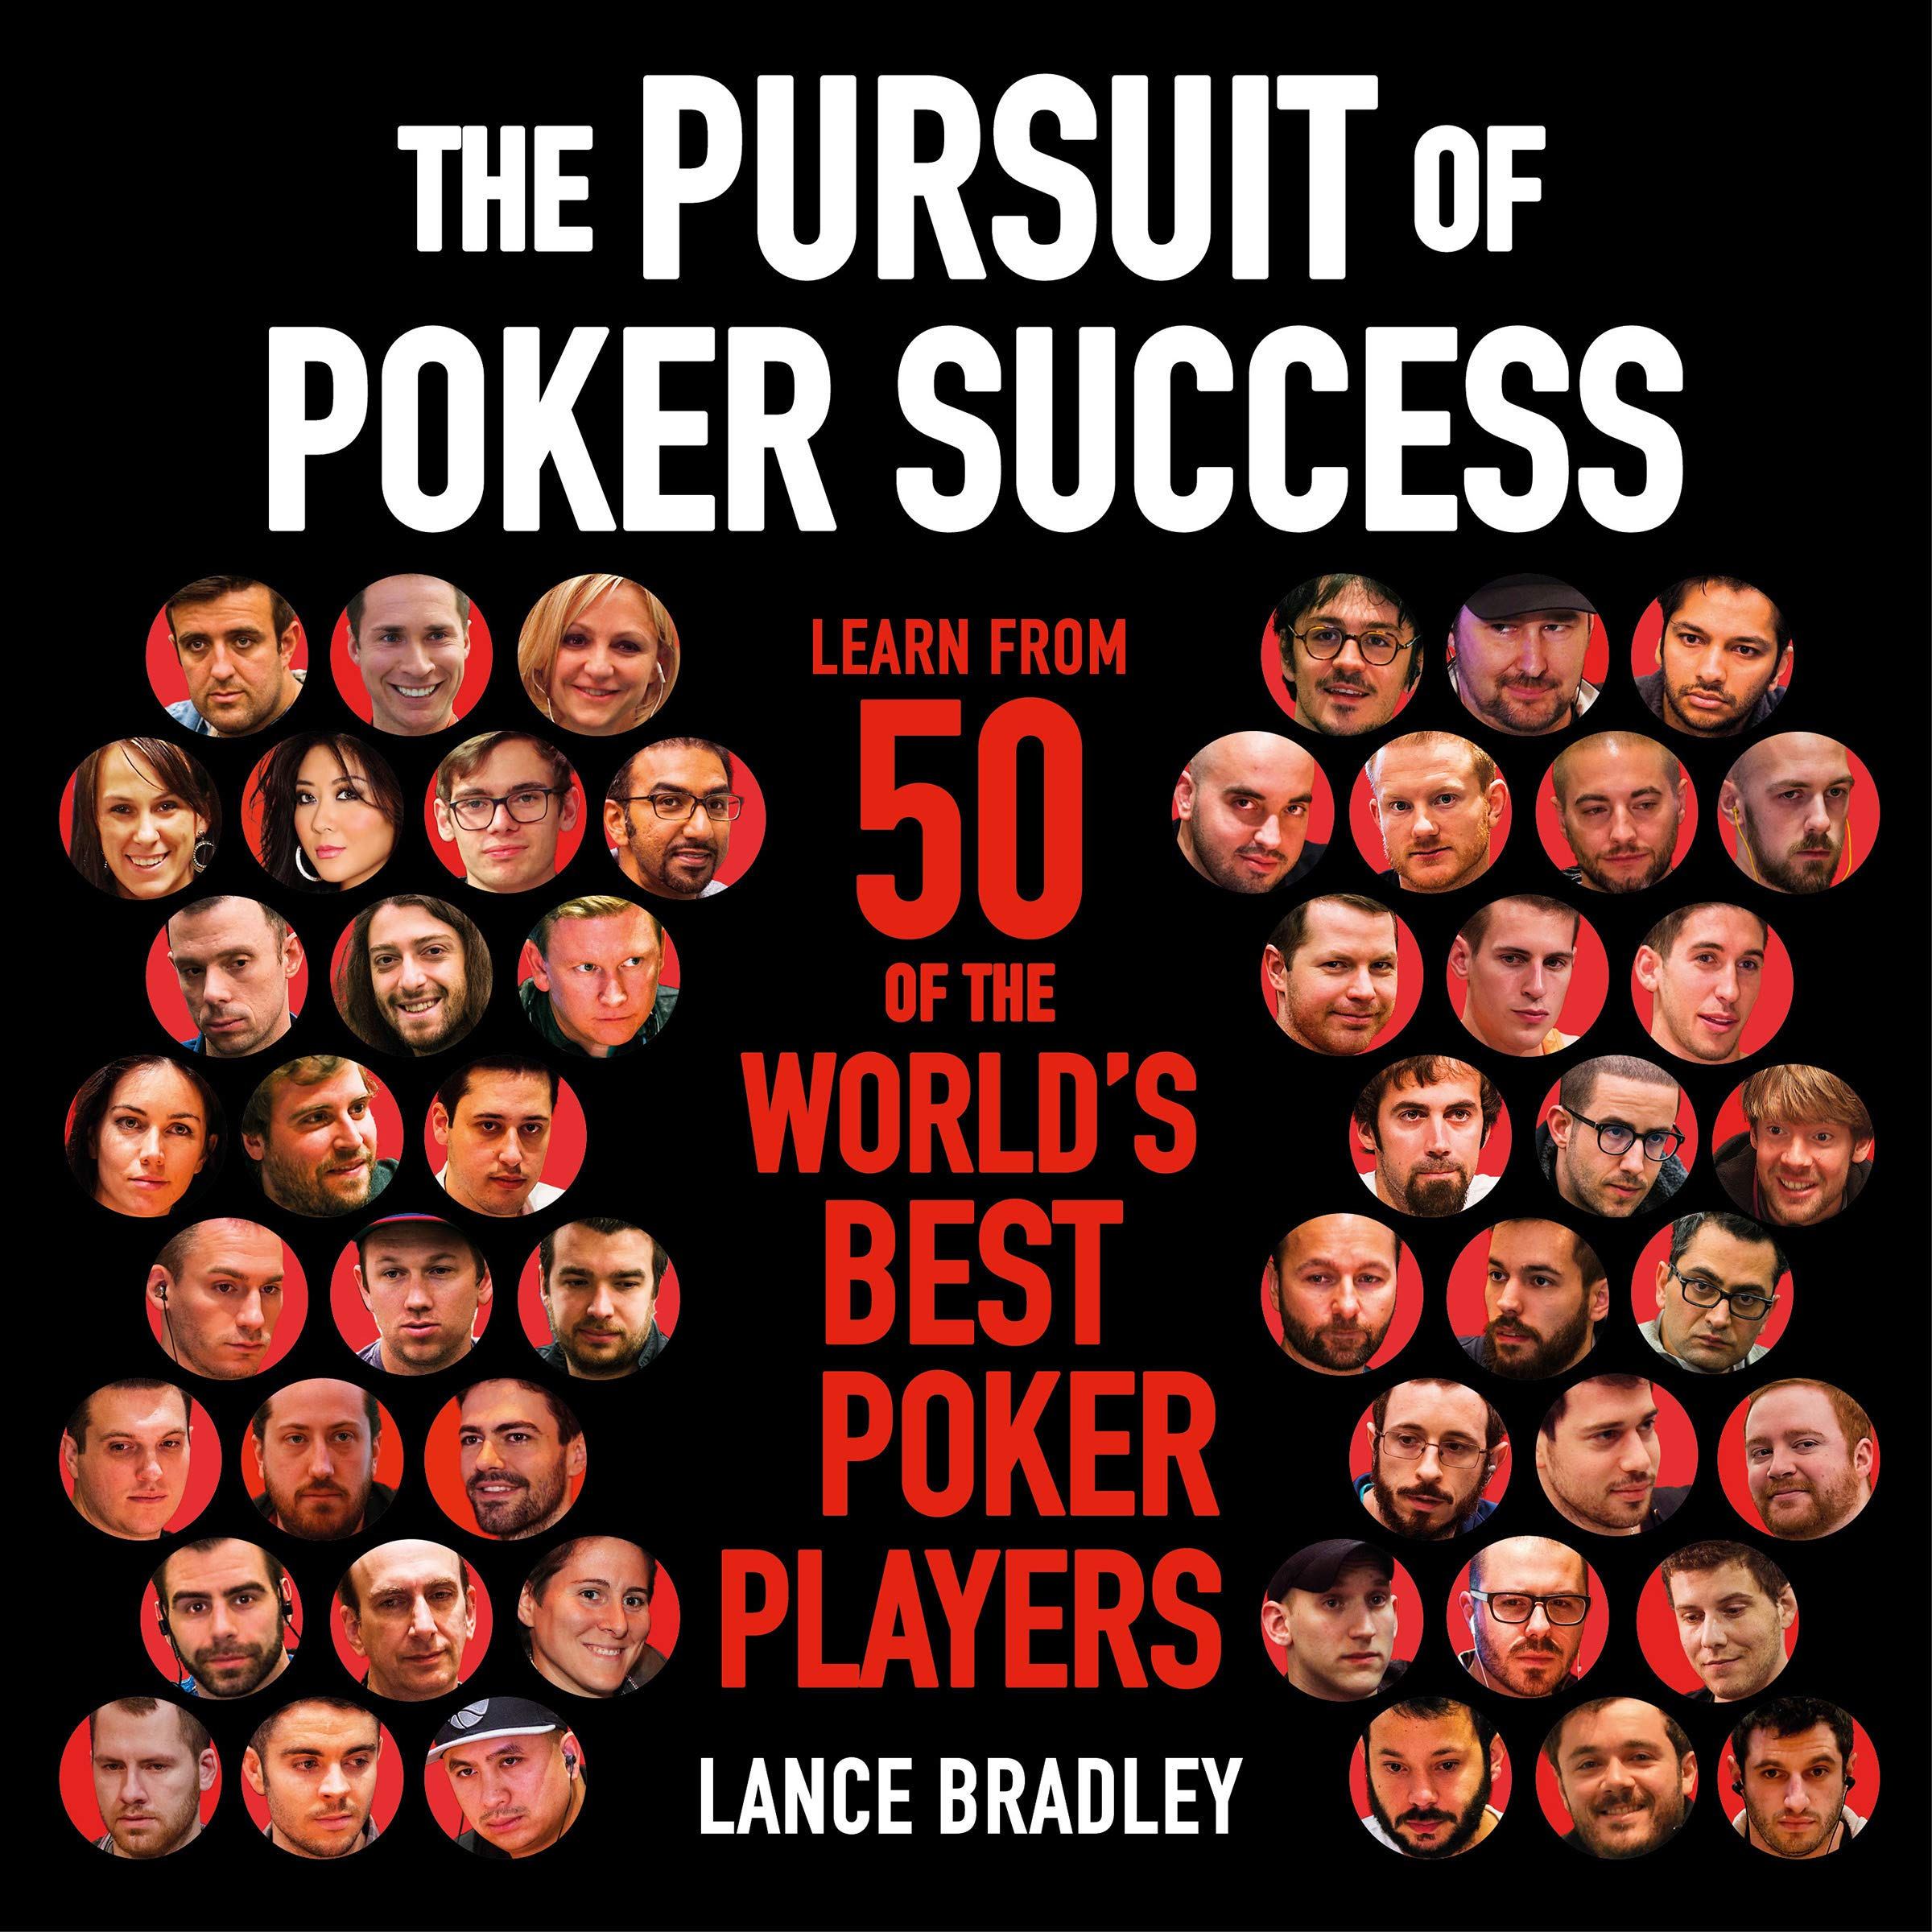 The Pursuit Of Poker Success  Learn From 50 Of The World's Best Poker Players